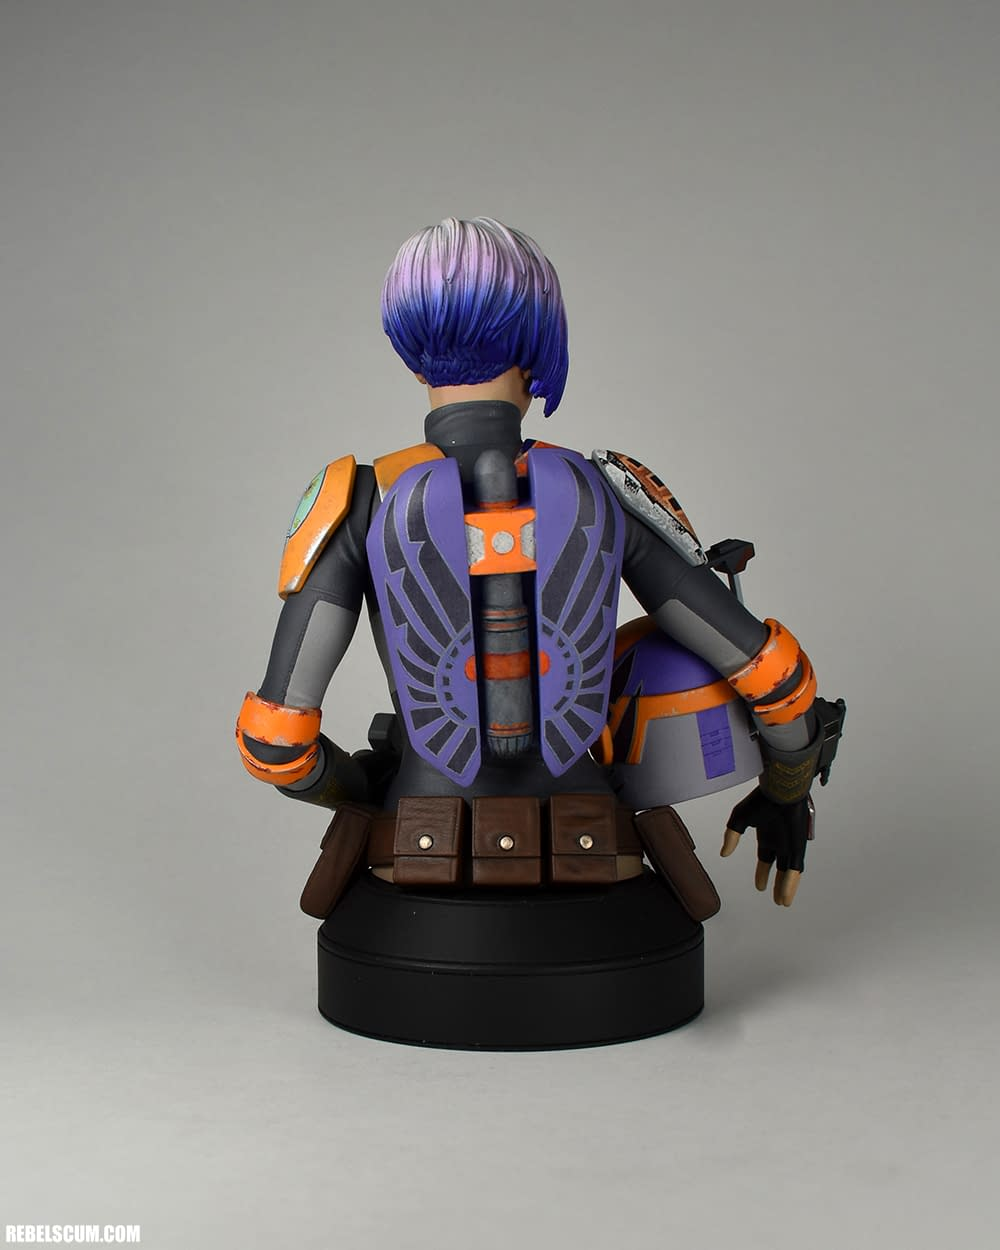 Star Wars: Rebels Sabine Wren Bust from Gentle Giant Ltd.